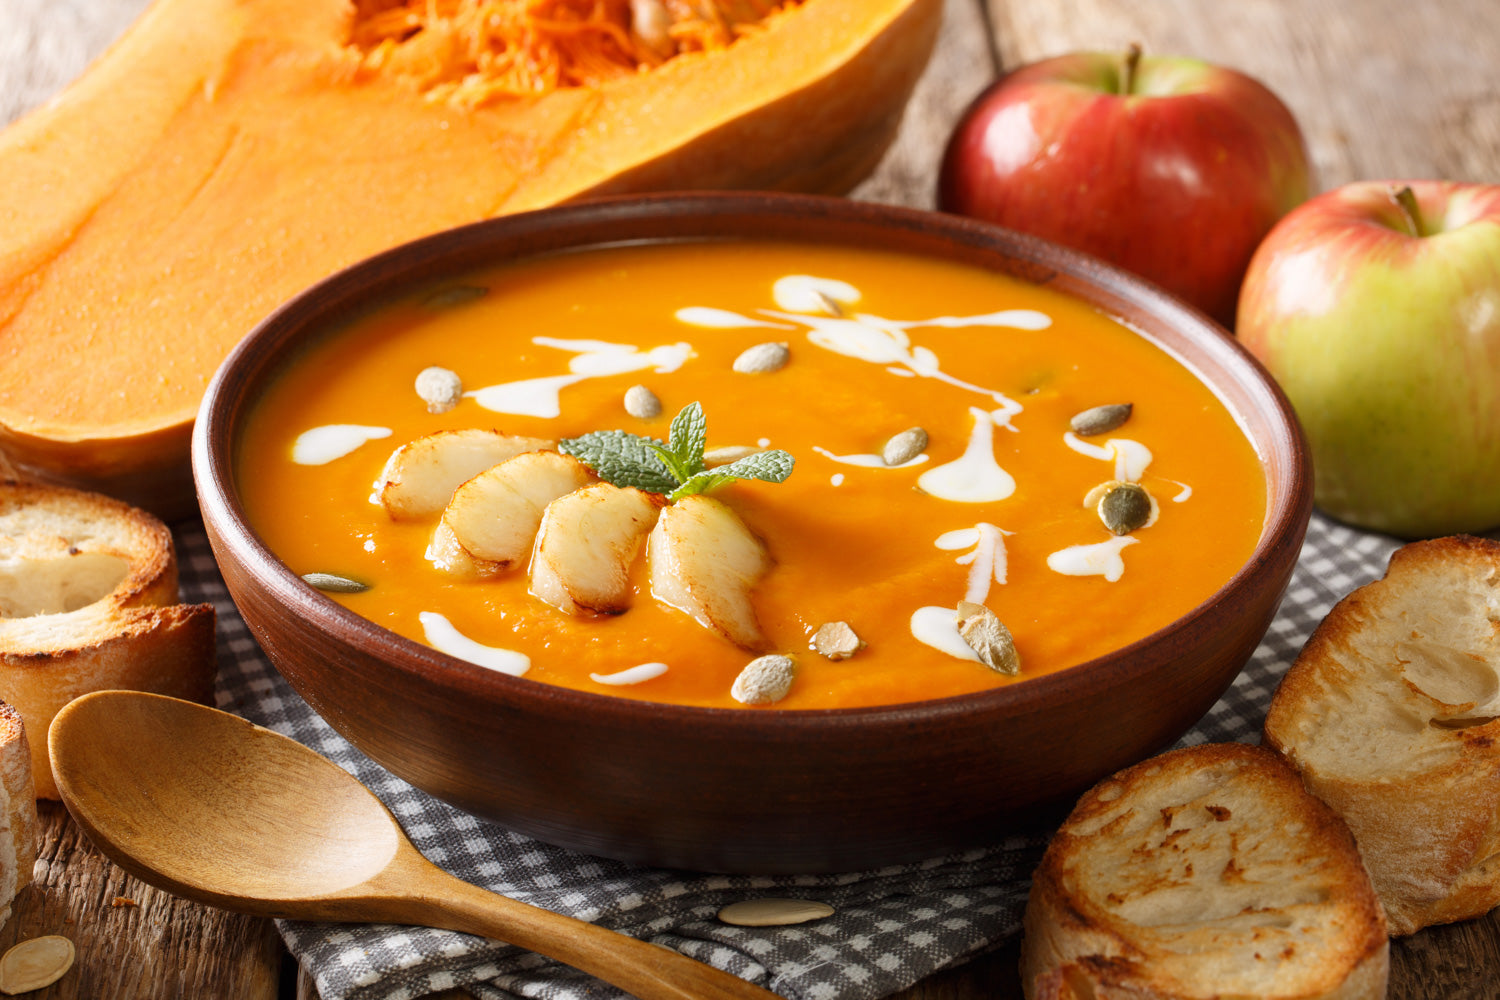 Cozy fall soup made with pumpkins, apples, and seasoned with ginger spice.